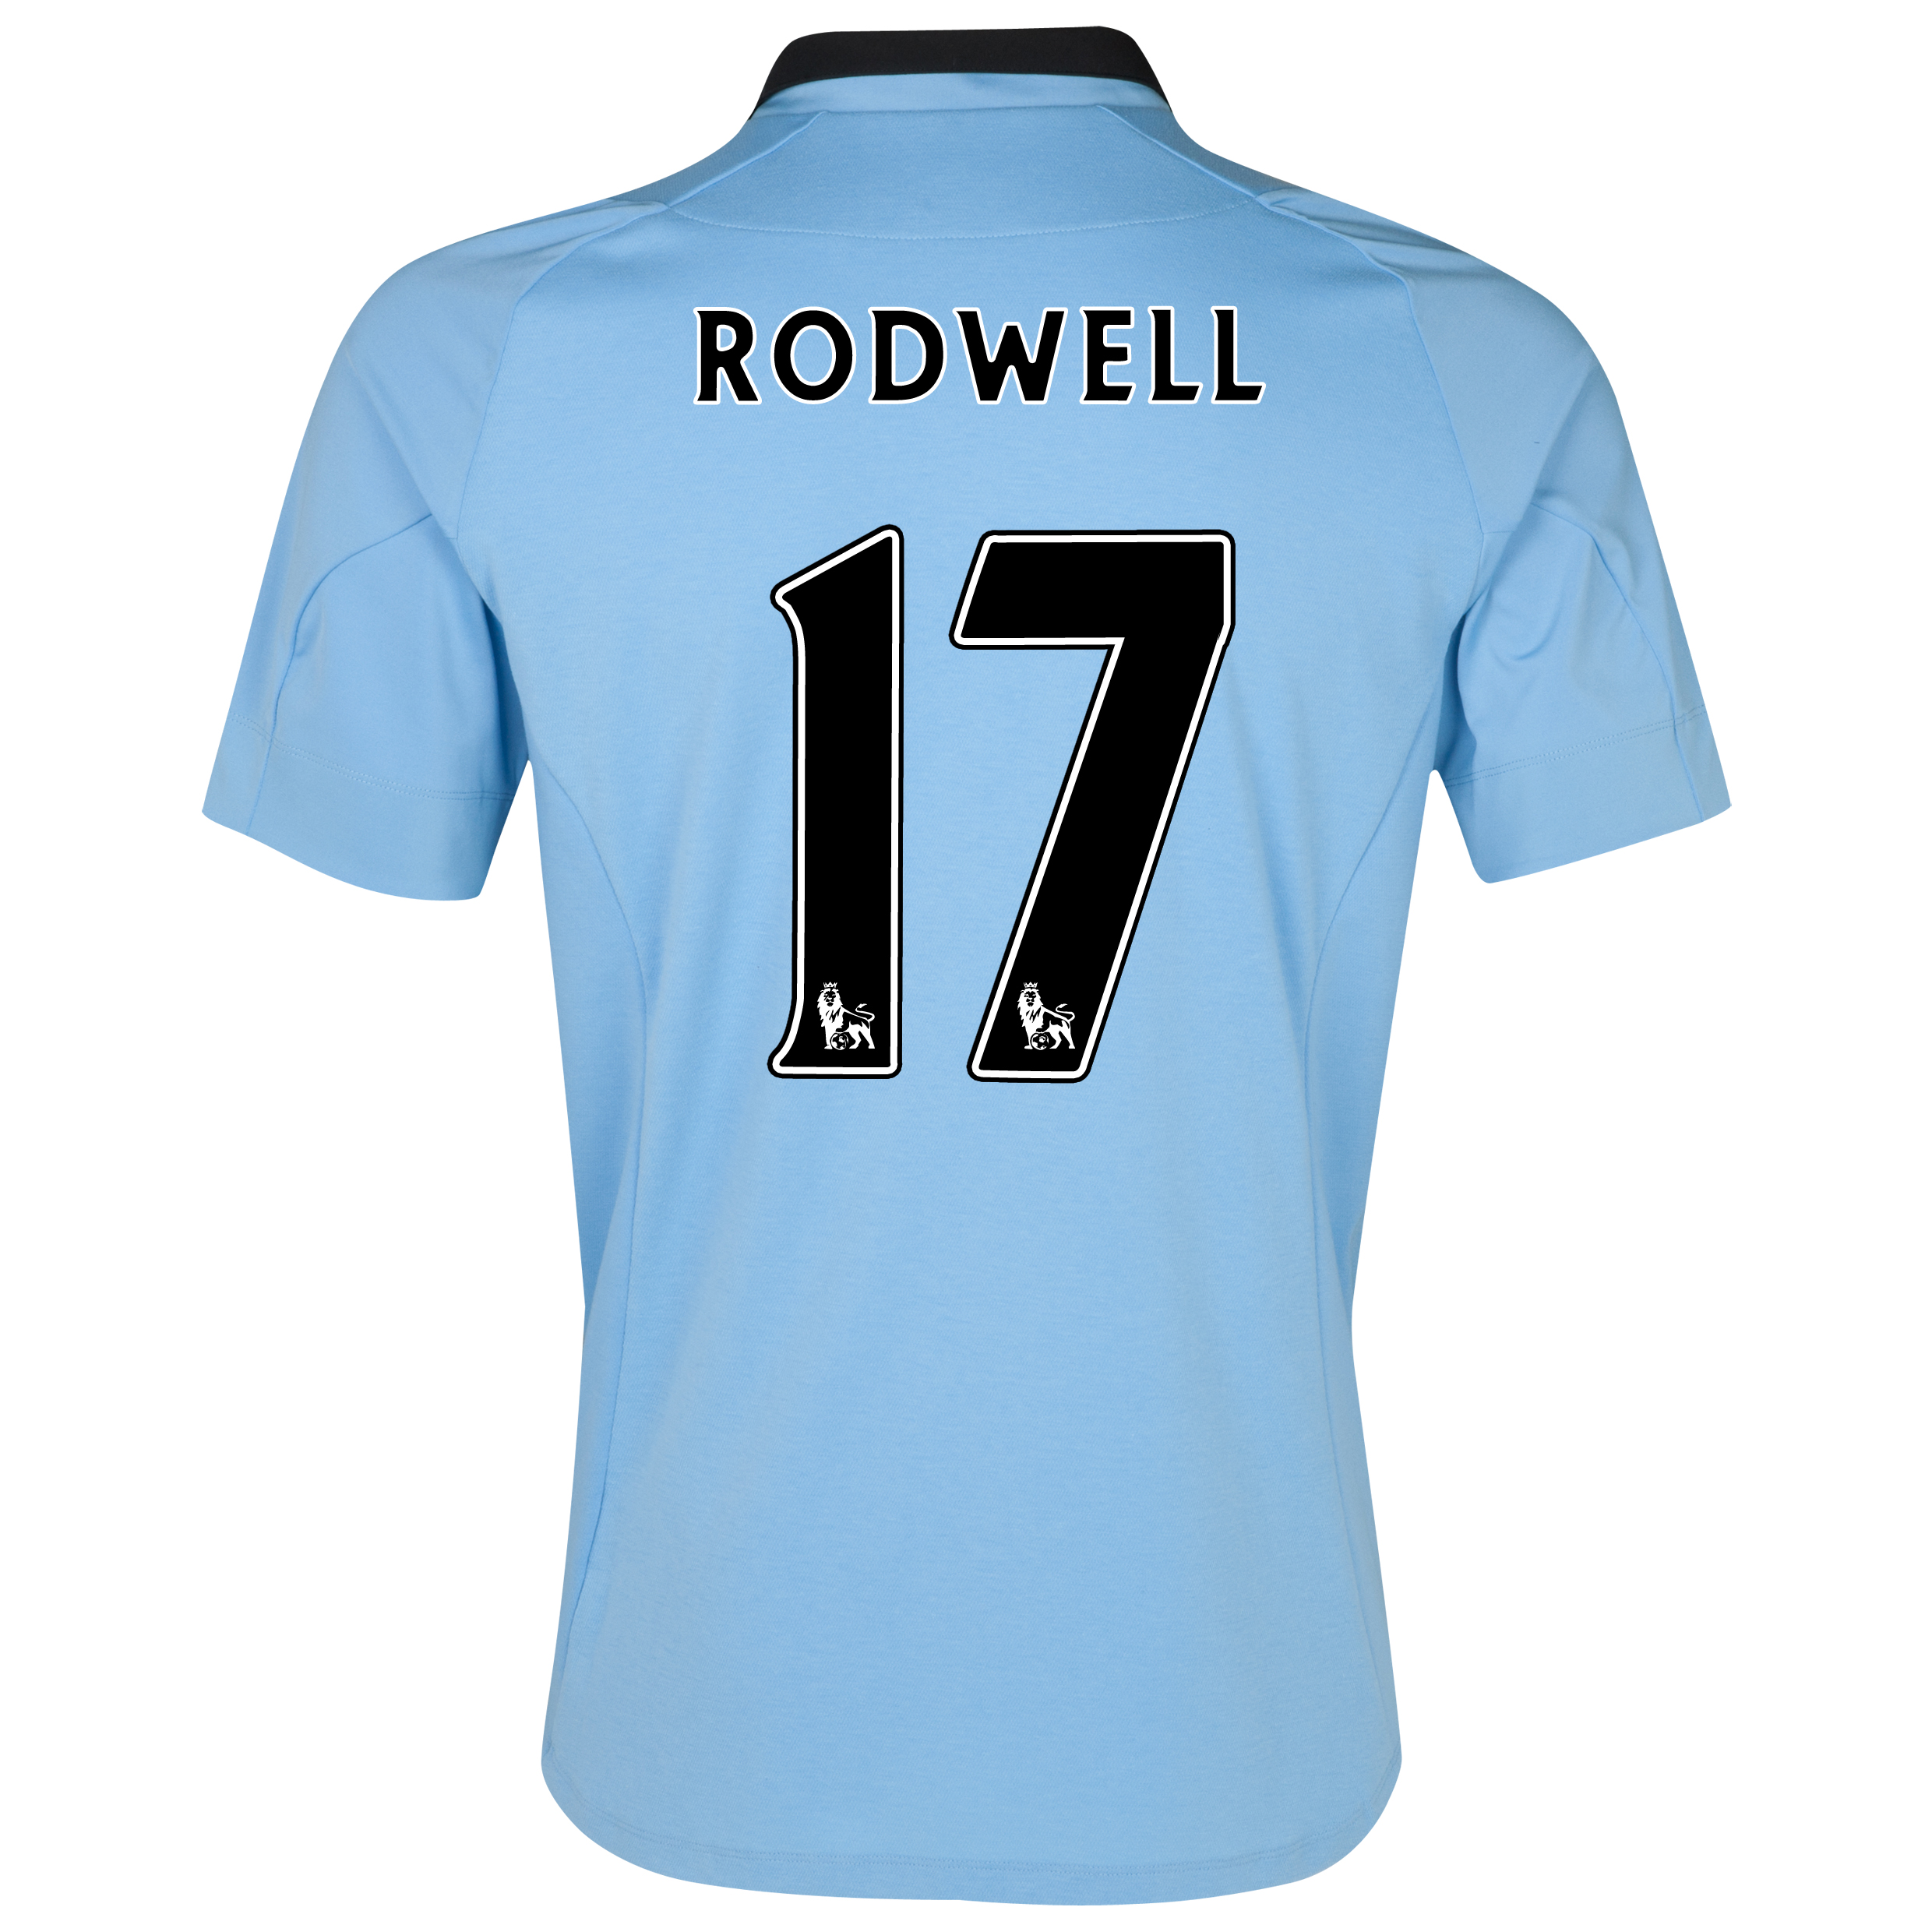 Manchester City Home Shirt 2012/13 with Rodwell 17 printing